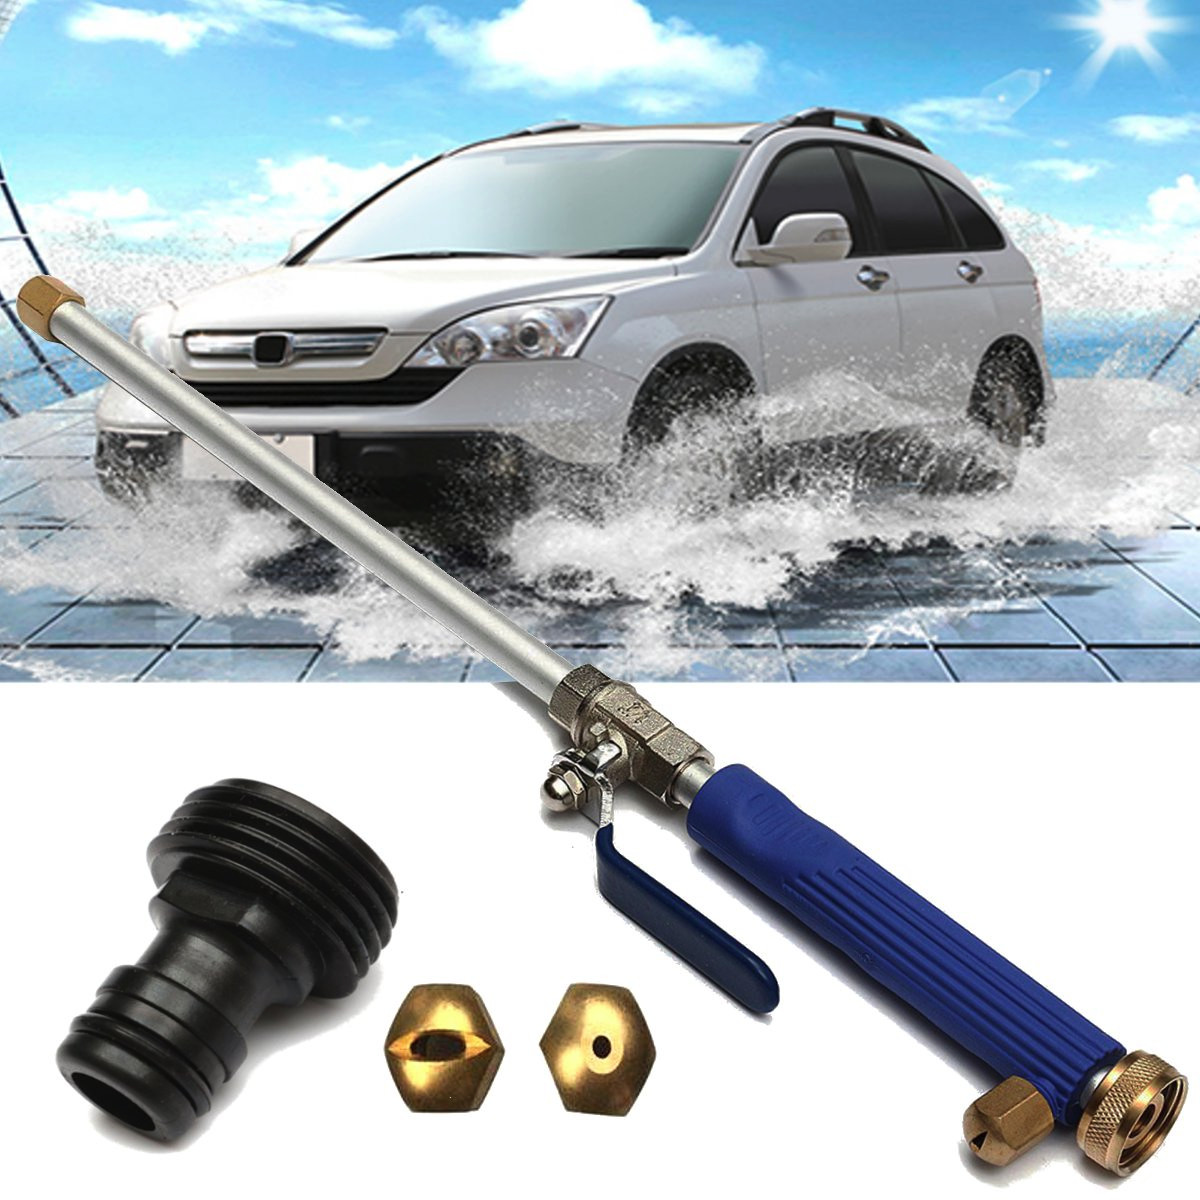 "18"" Aluminium High Pressure Power Car Washer Spray Nozzle Water Gun Hose Wand Attachment w/Tips(China)"